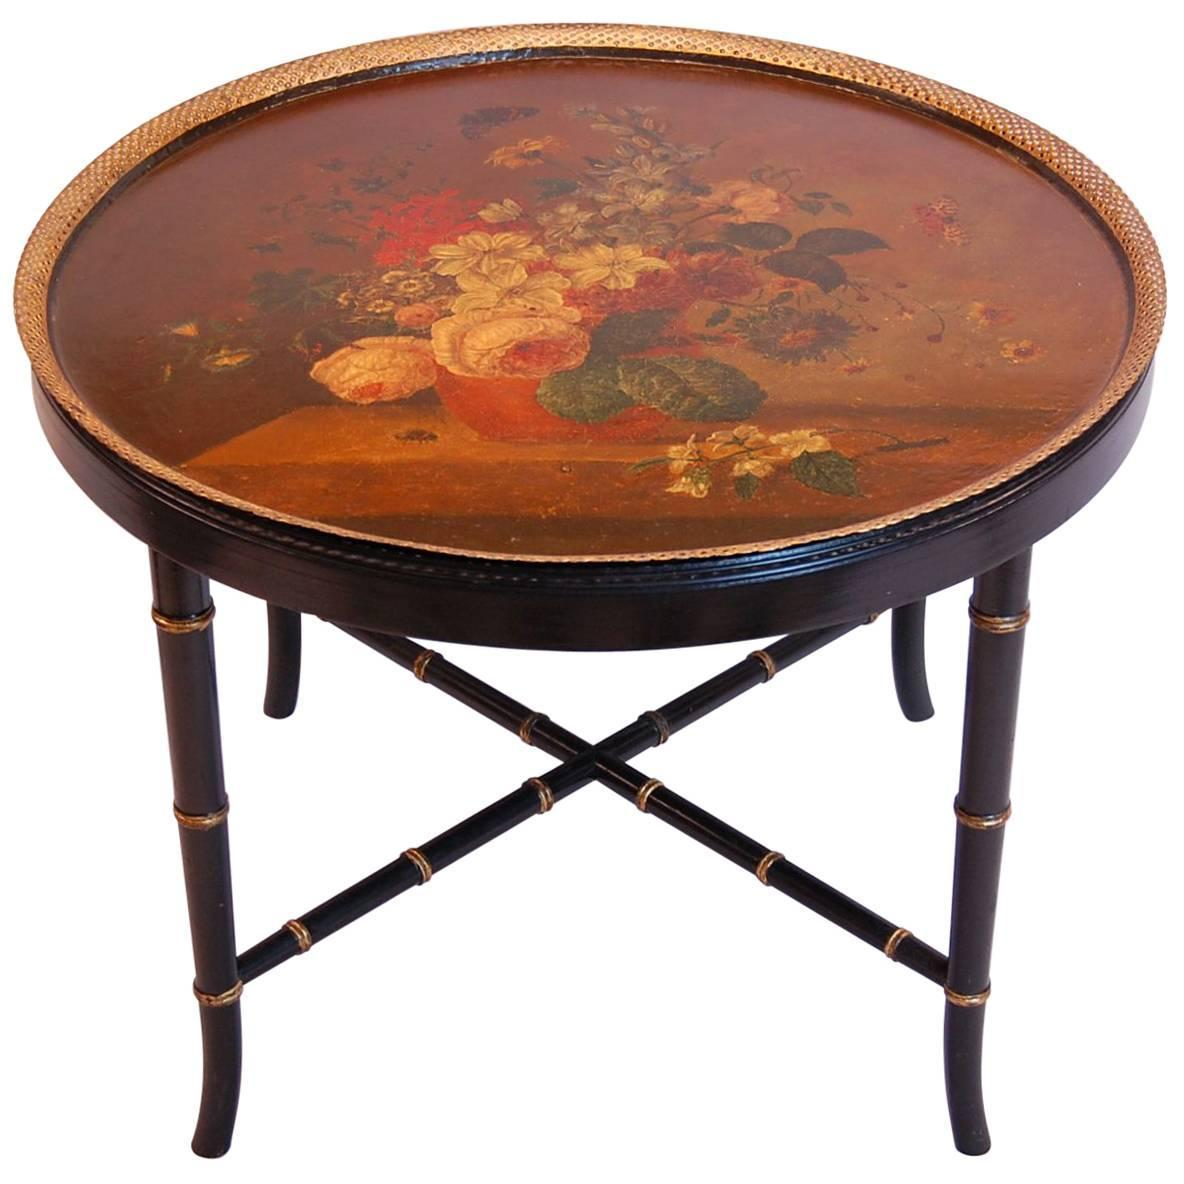 Large Gold Coffee Table Tray: Large Floral Painted Circular Tole Tray On Black Lacquered